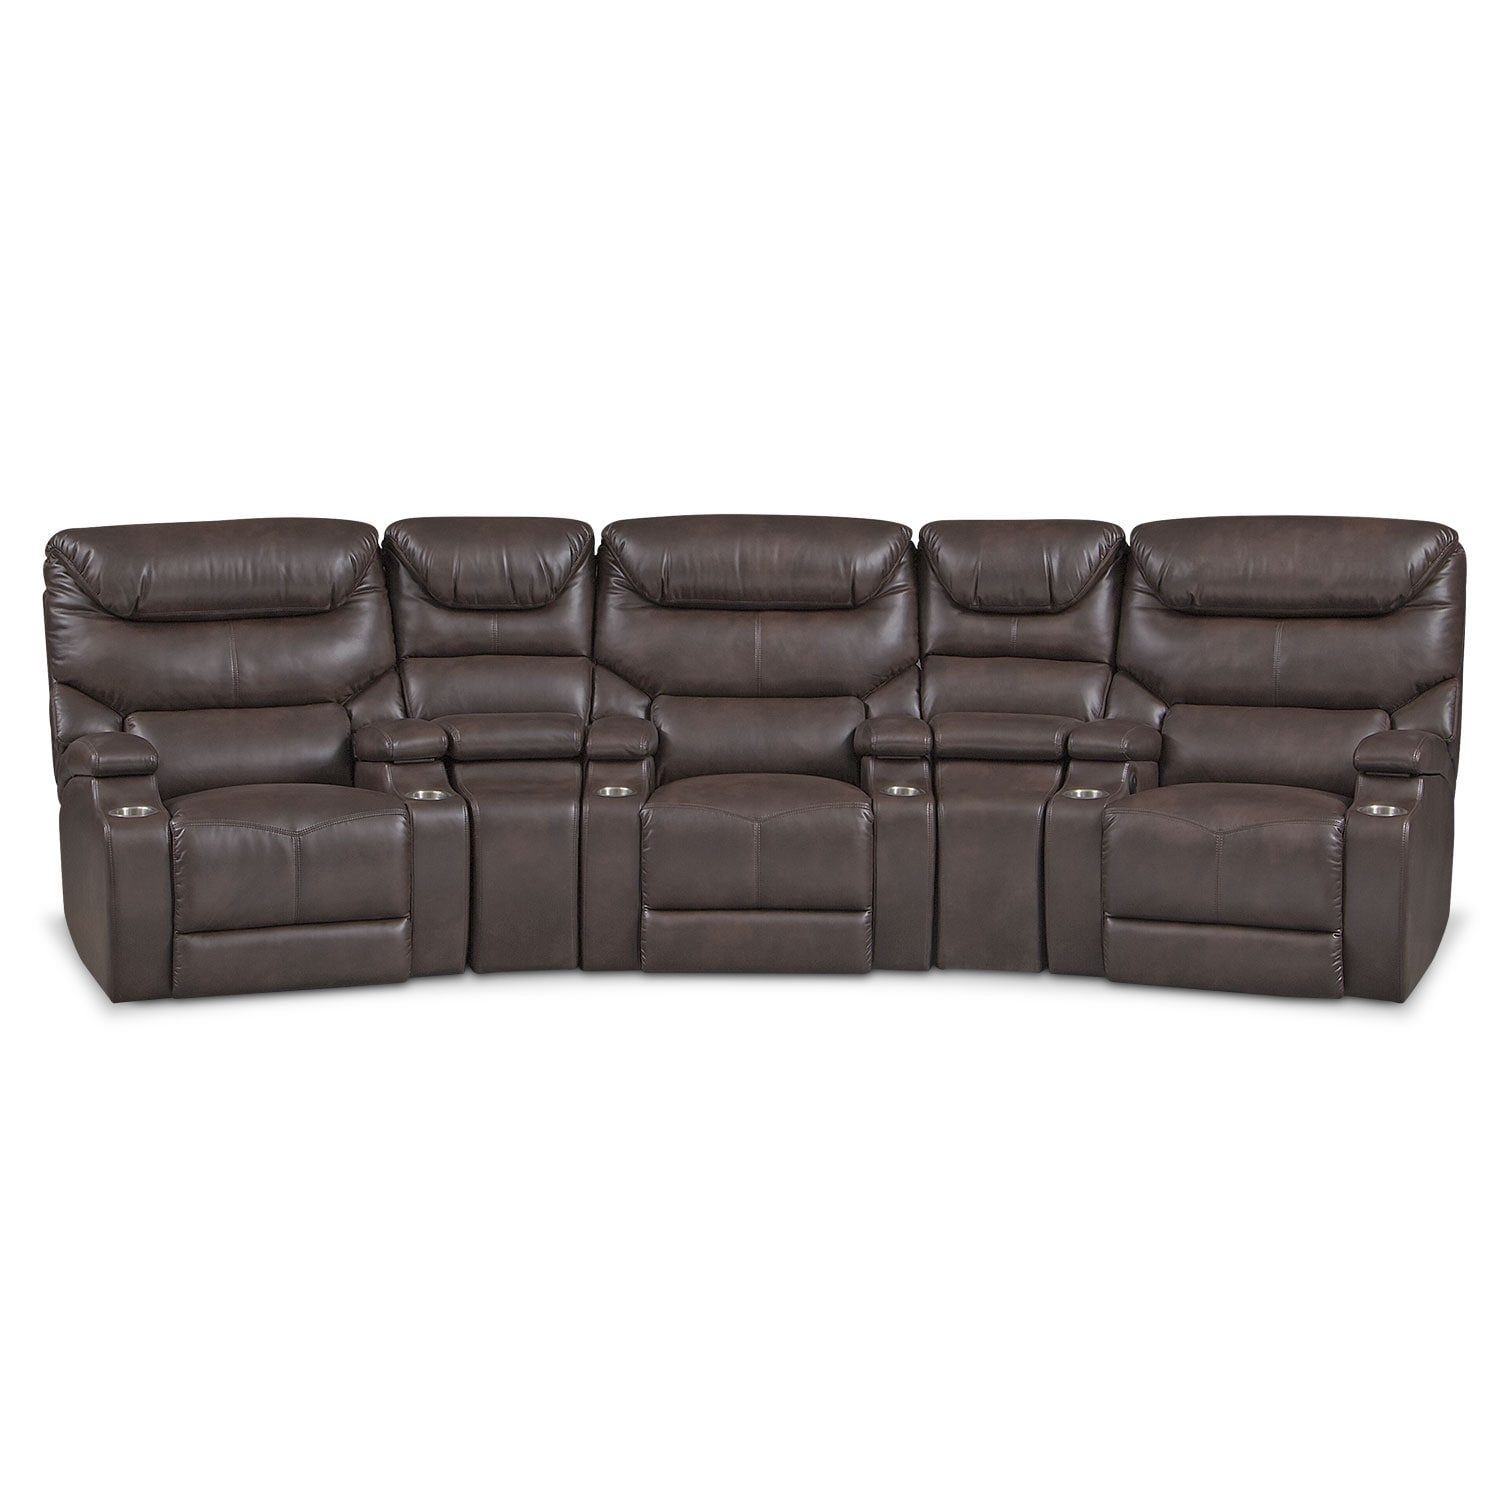 Living Room Furniture - Jupiter 5-Piece Power Reclining Home Theater Sectional - Brown